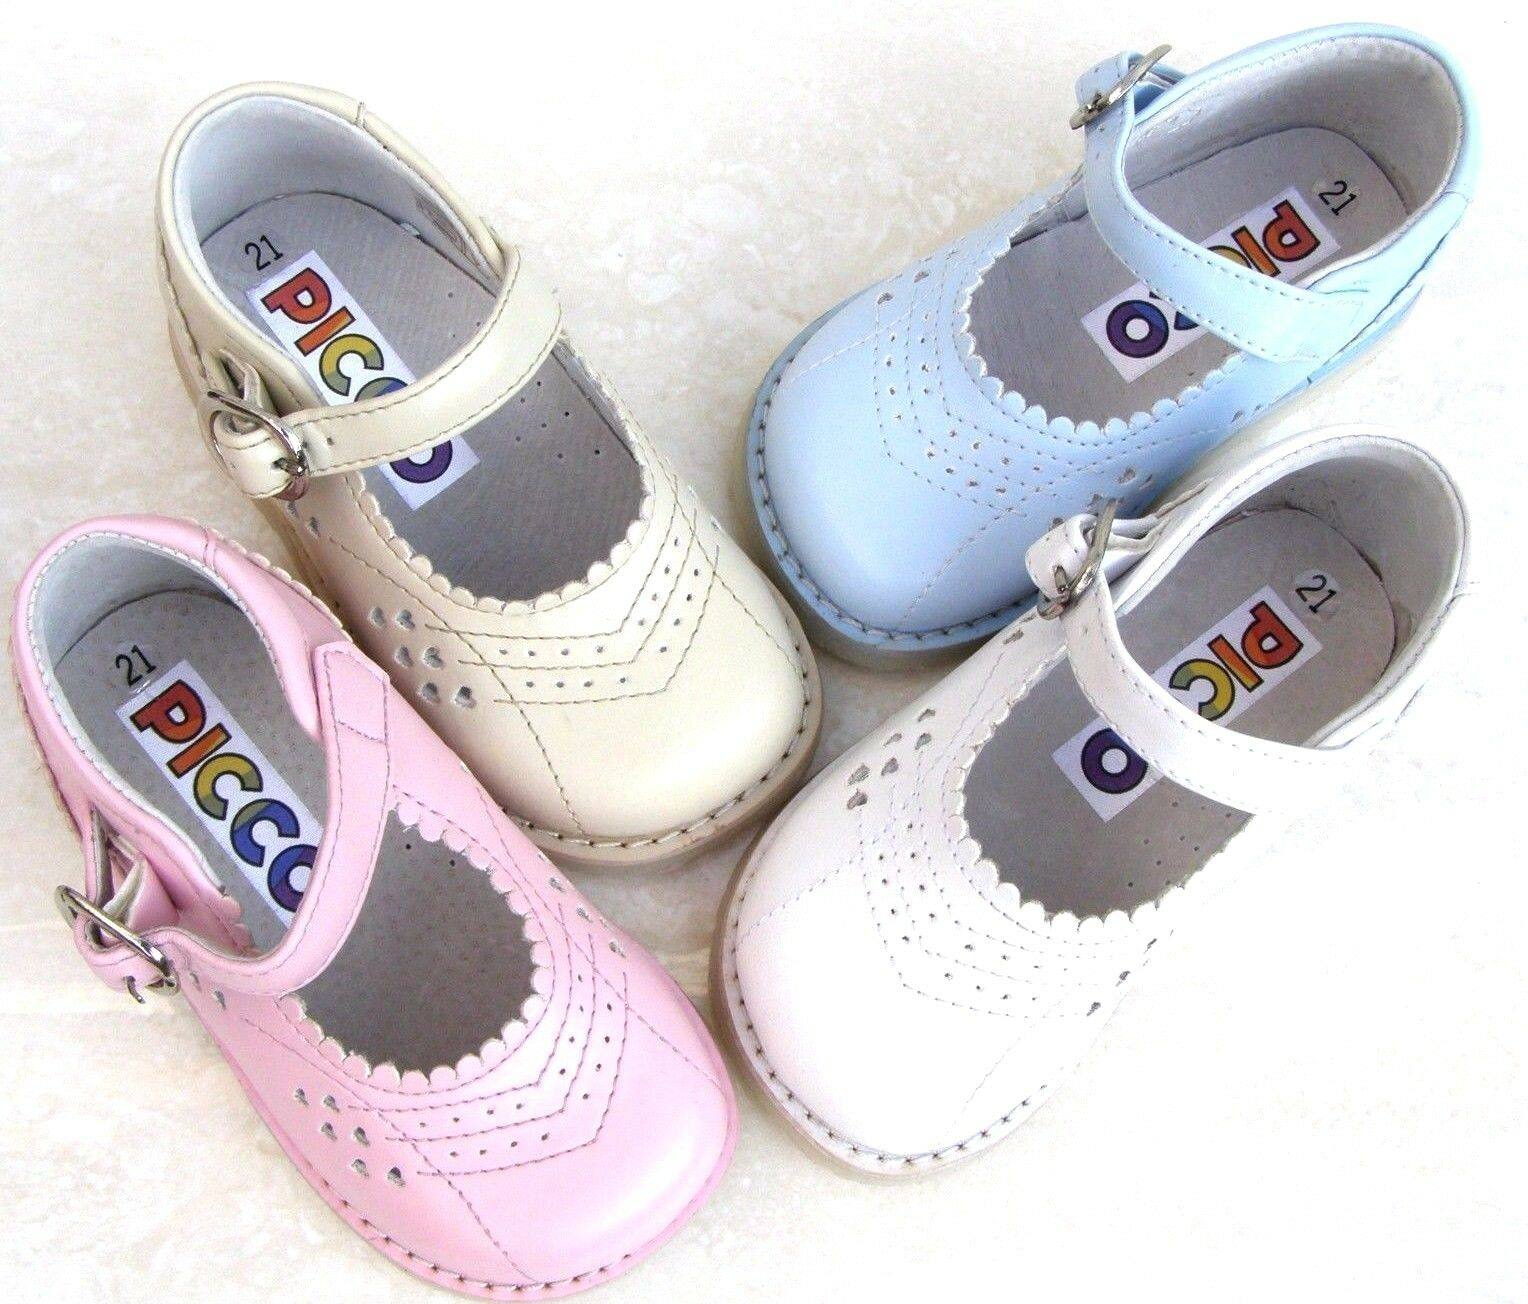 632b7174a05b Baby Girls Leather Lined Pink BALLERINAS Toe Caps PUMPS Walking ...